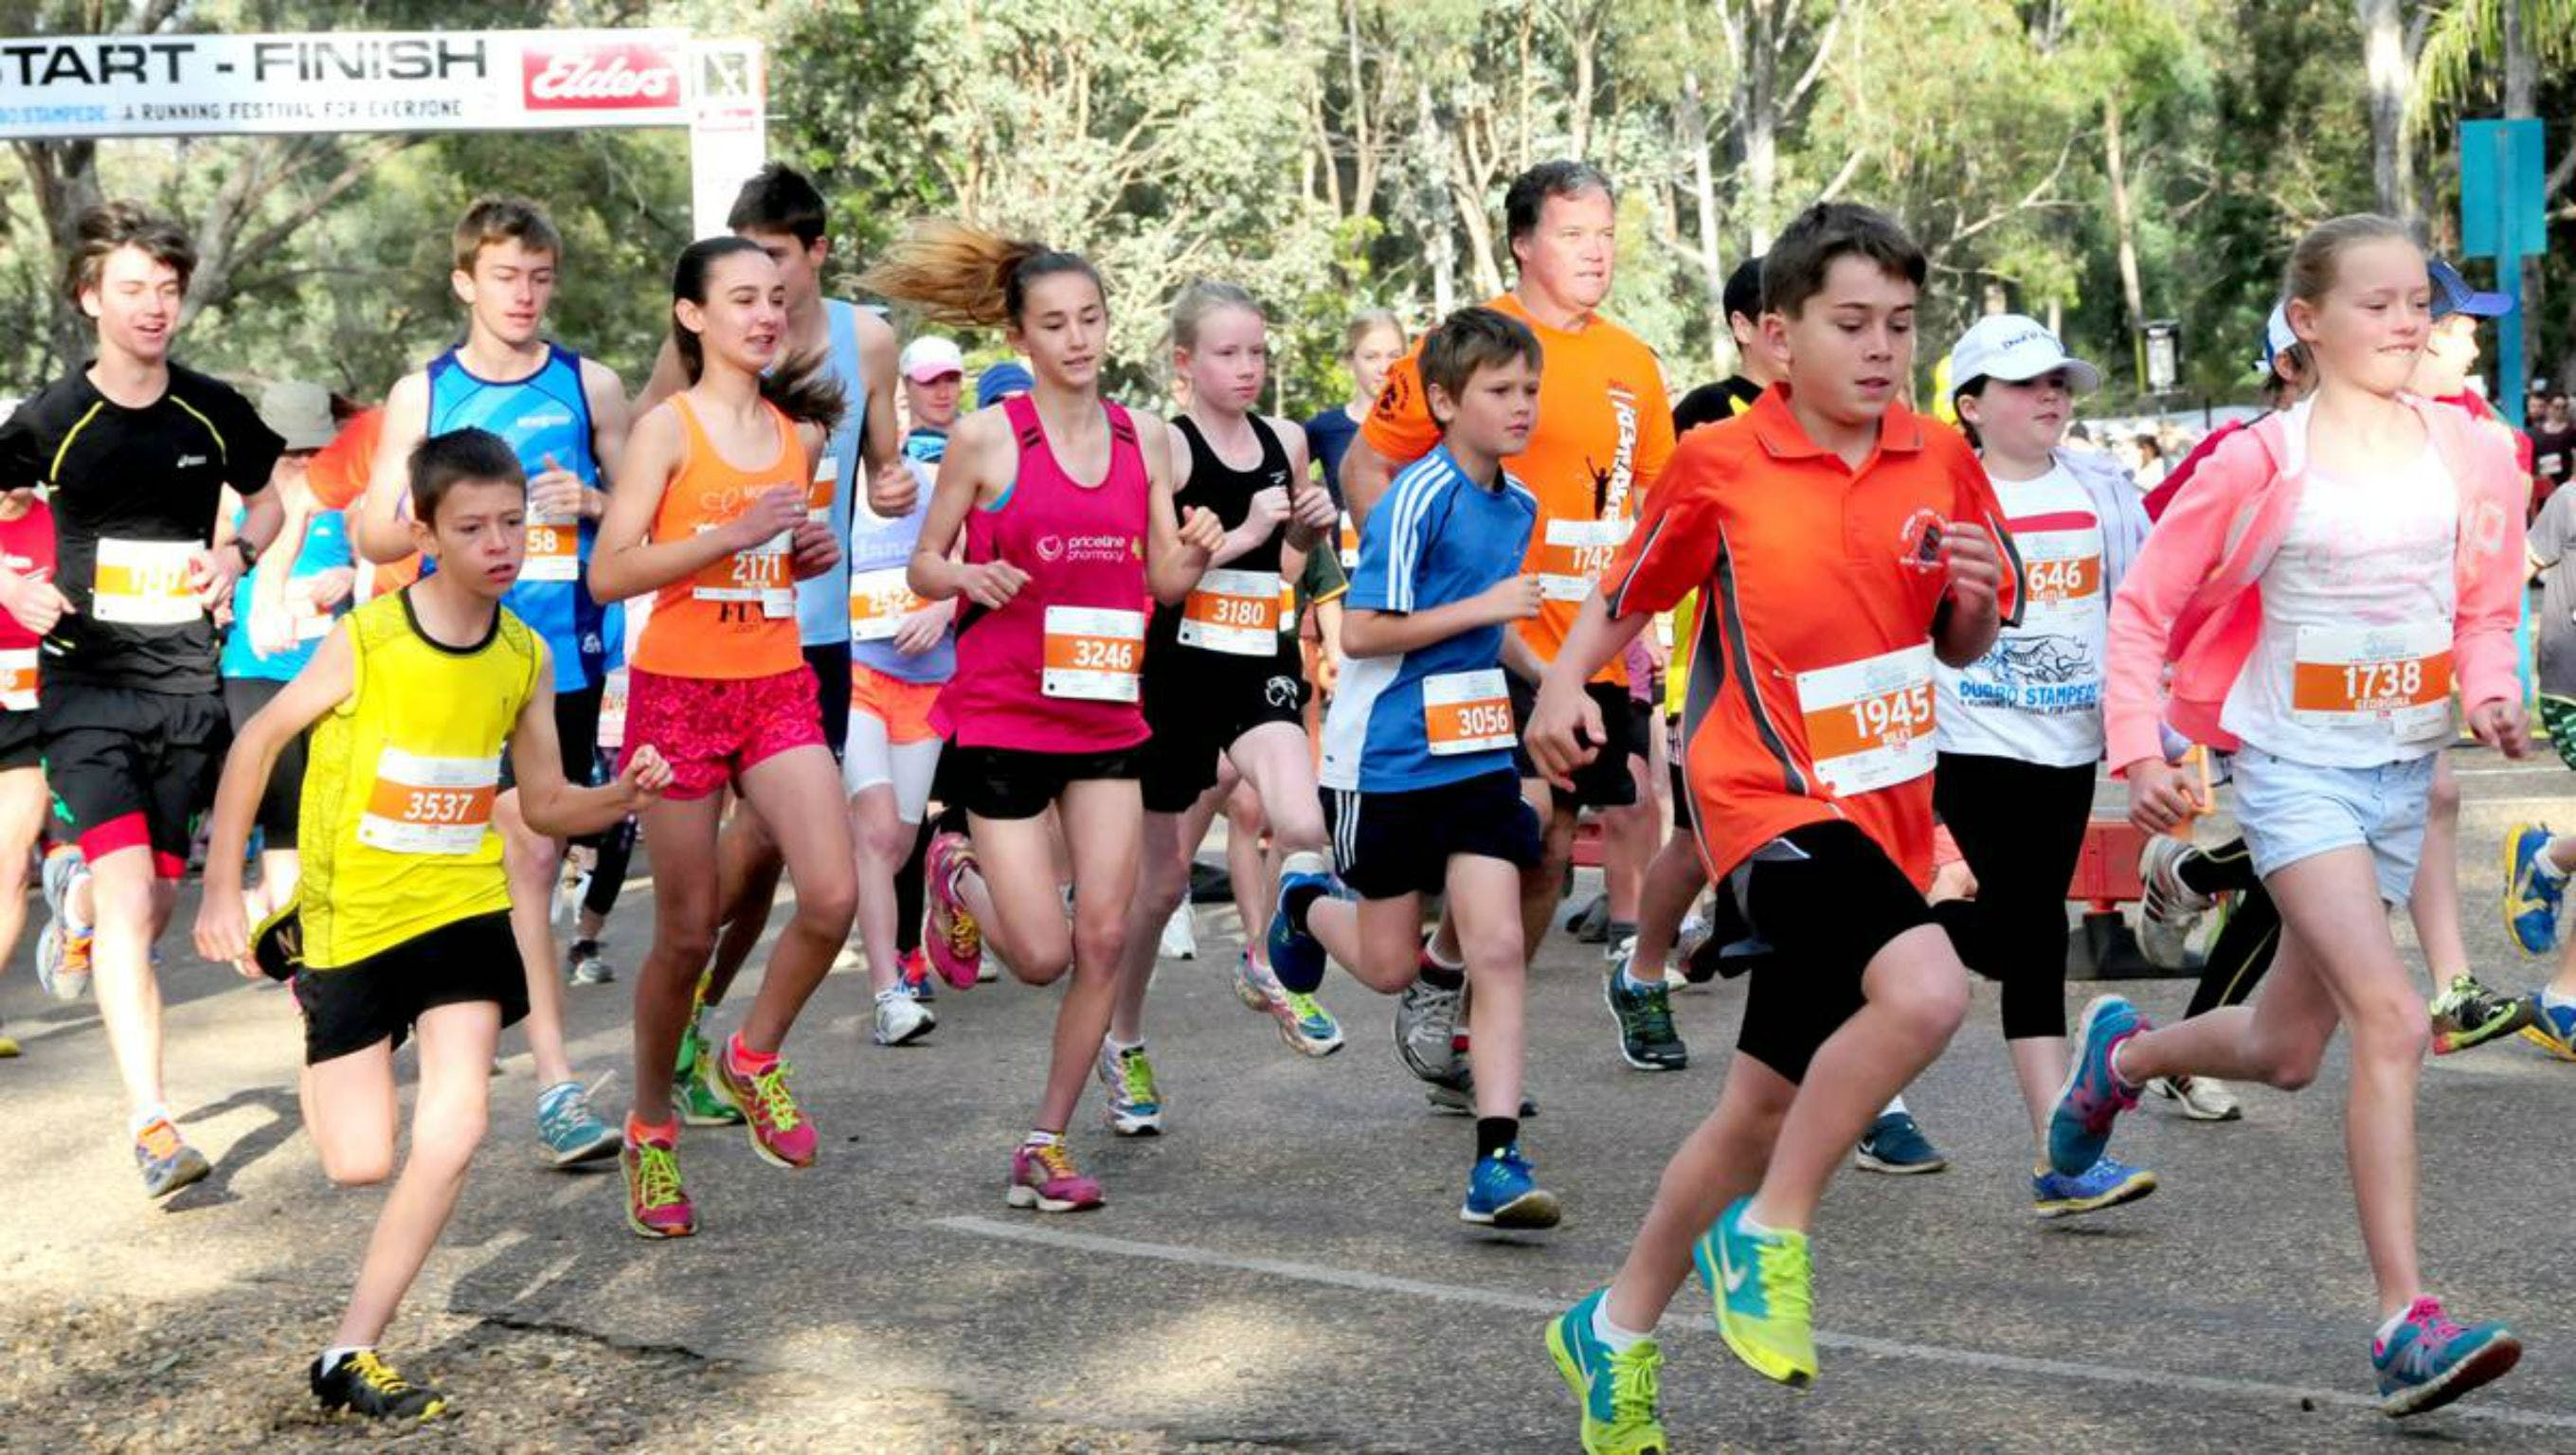 MAAS Group Dubbo Stampede Running Festival - Whitsundays Tourism